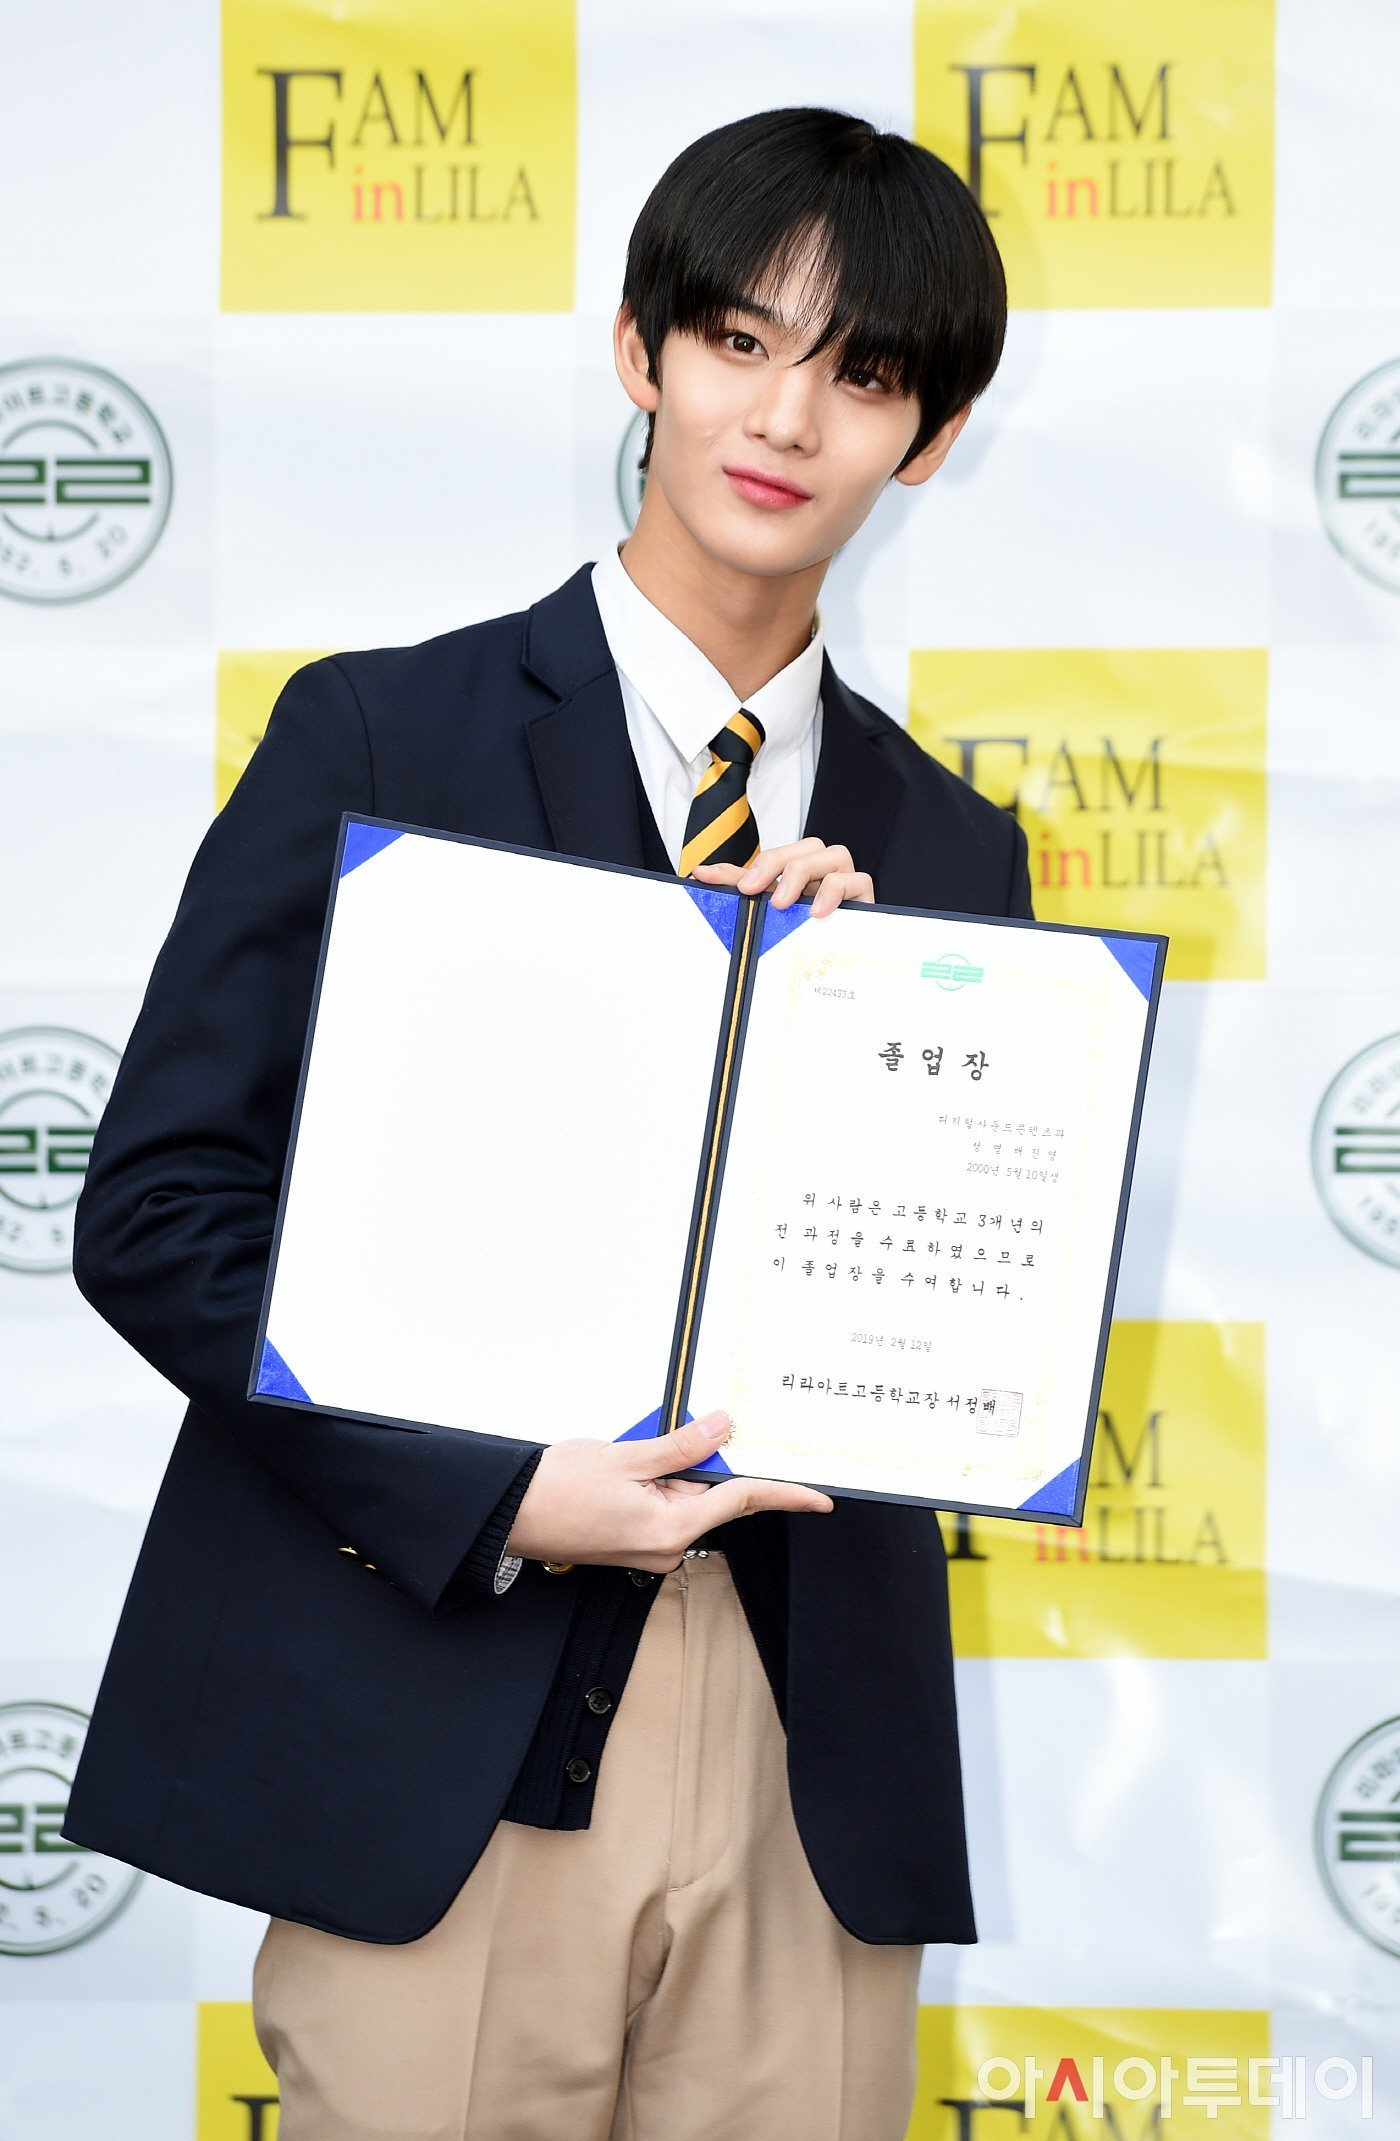 bae jinyoung, bae jinyoung profile, bae jinyoung facts, bae jinyoung graduation, wanna one, wanne one profile, wanan one members, wanna one facts, wanna one bae jinyoung